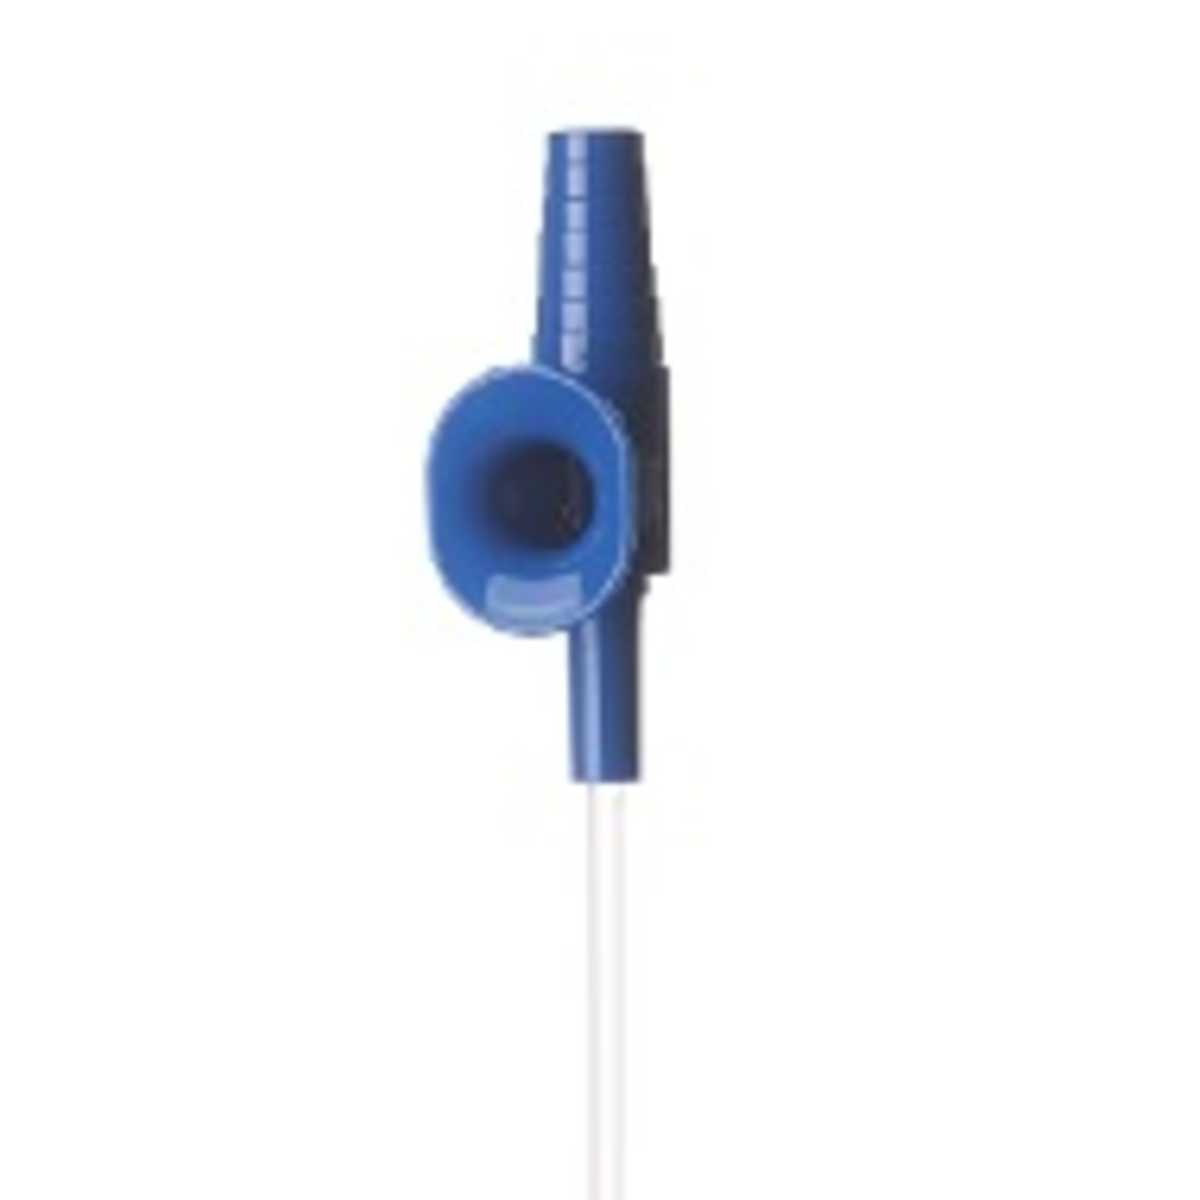 Suction Catheter With Vacuum Control Connector, Blue, Ch 8